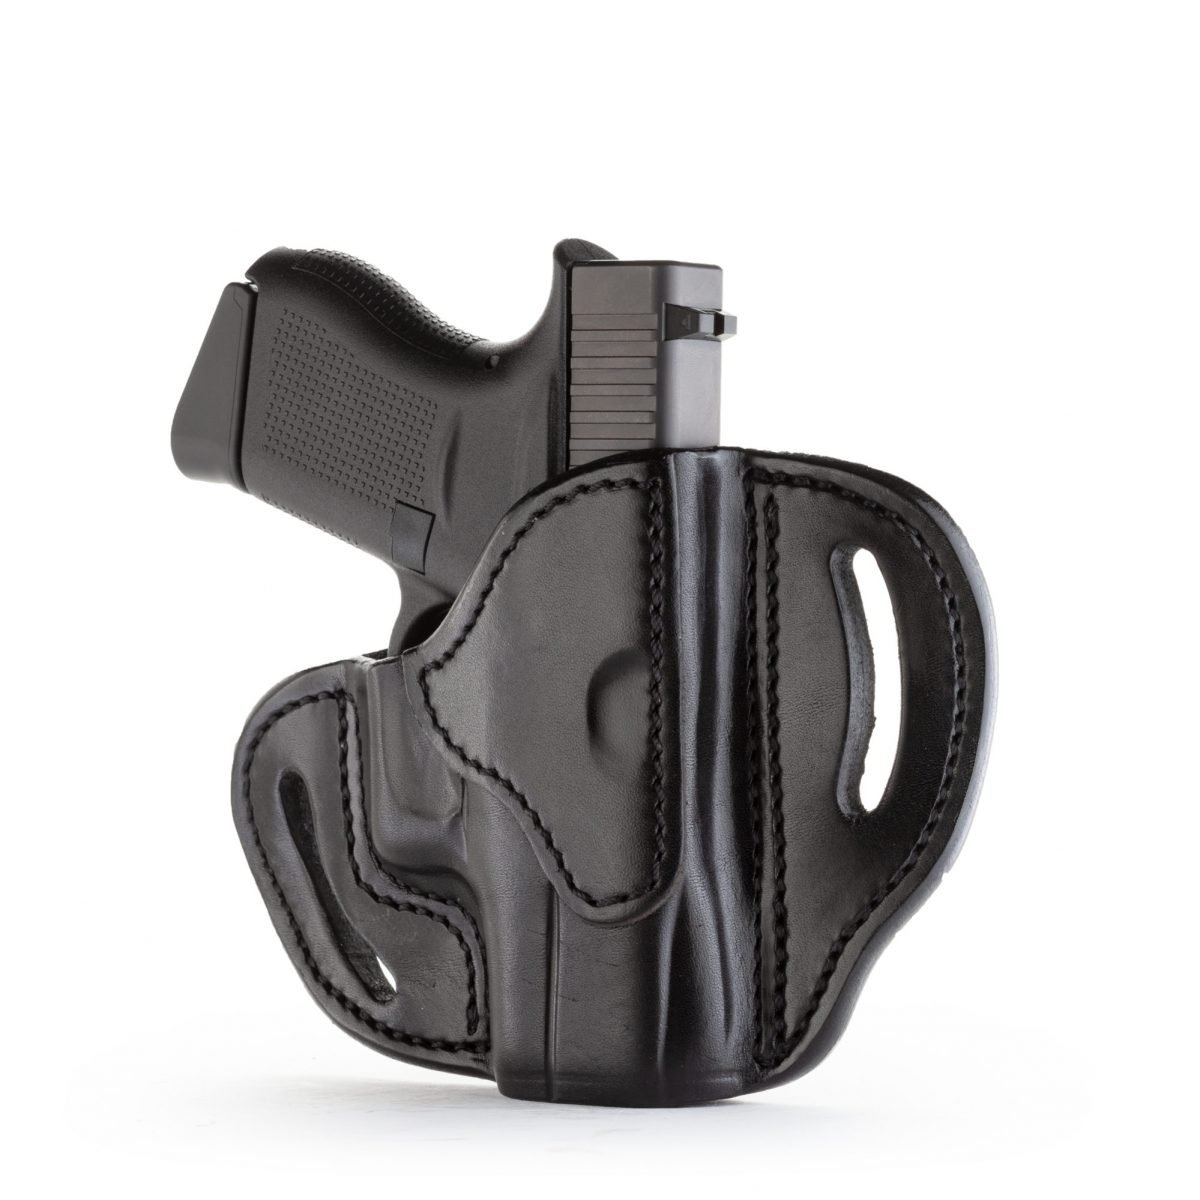 BHC– Open Top Belt Holster for Small and Micro-Frame Firearms